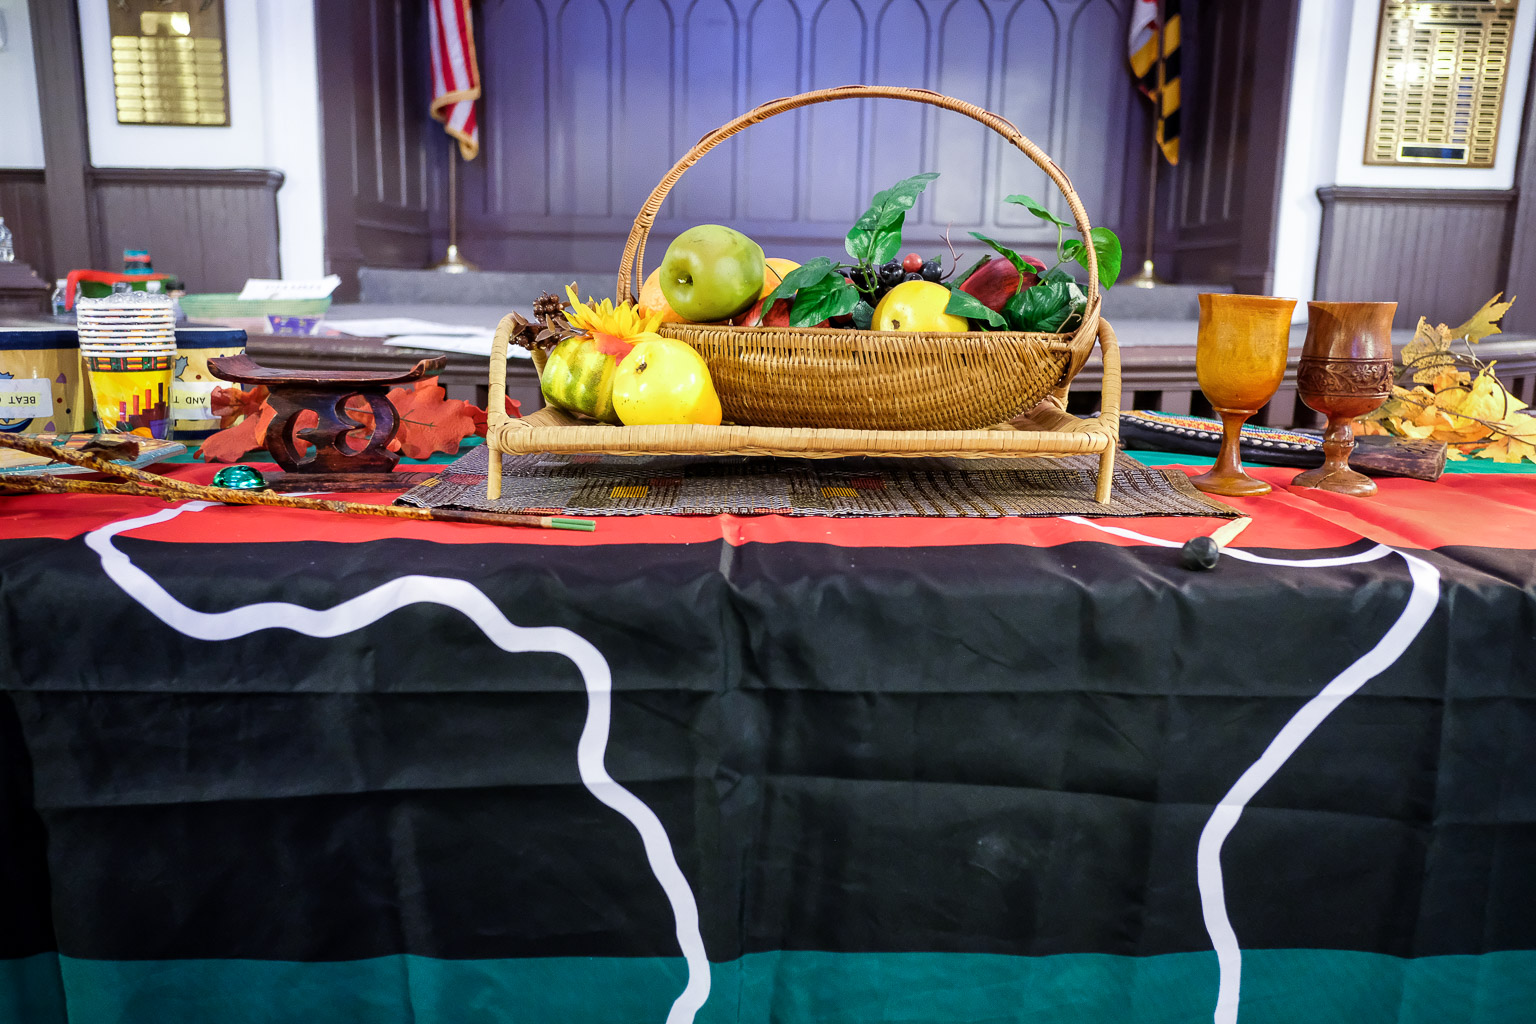 Banneker-Douglass_Kwanzaa_Celebration_Lenzy_Ruffin_Event_Photography_12-9-17-063.jpg